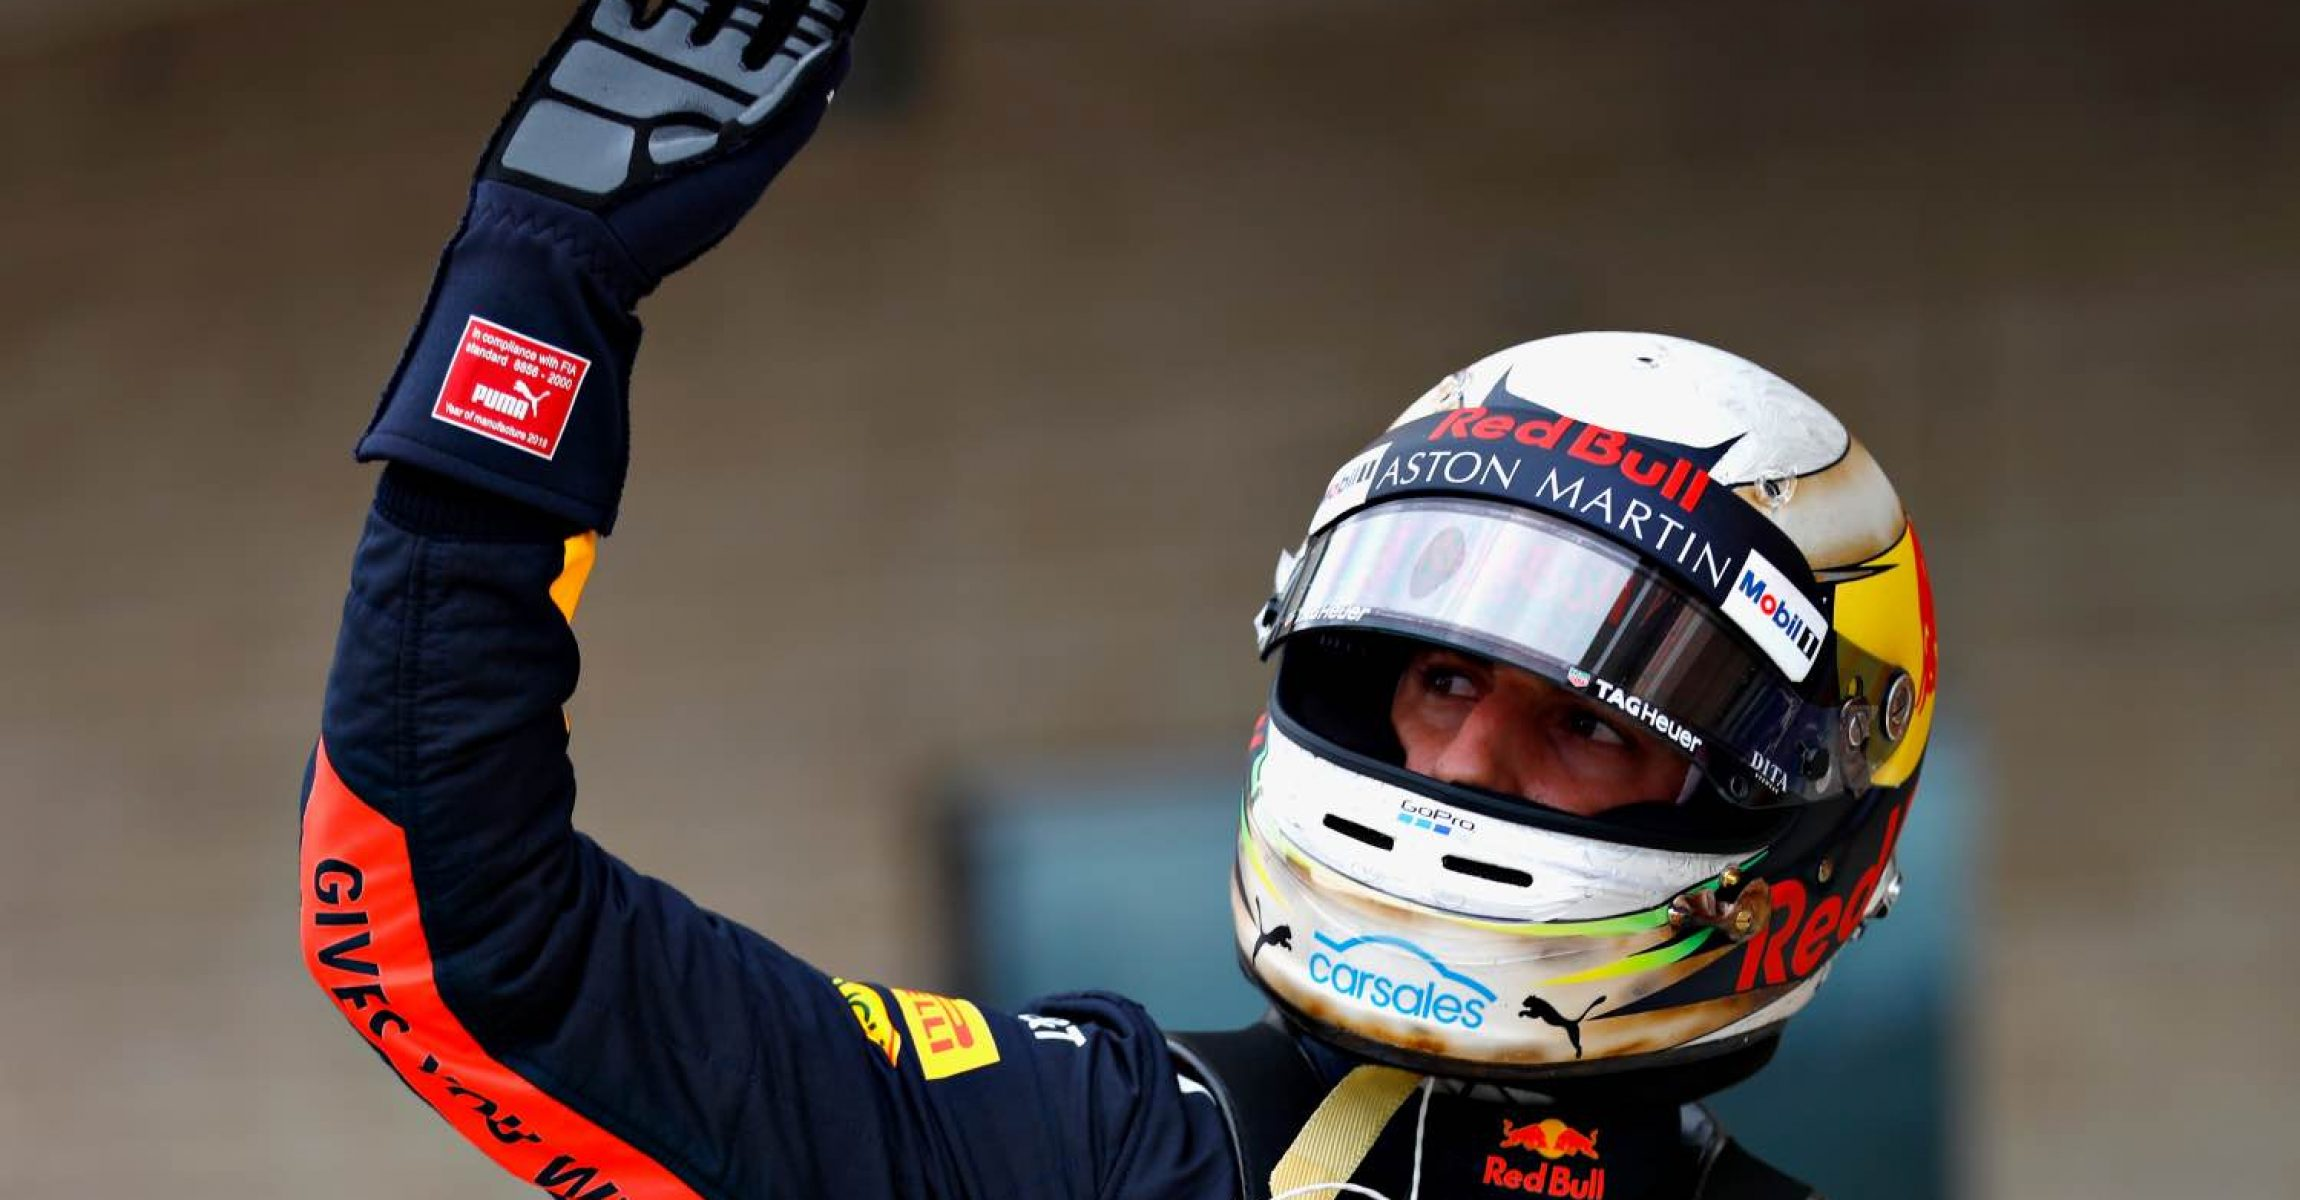 AUSTIN, TX - OCTOBER 20: Daniel Ricciardo of Australia and Red Bull Racing waves to the crowd from parc ferme during qualifying for the United States Formula One Grand Prix at Circuit of The Americas on October 20, 2018 in Austin, United States.  (Photo by Will Taylor-Medhurst/Getty Images)